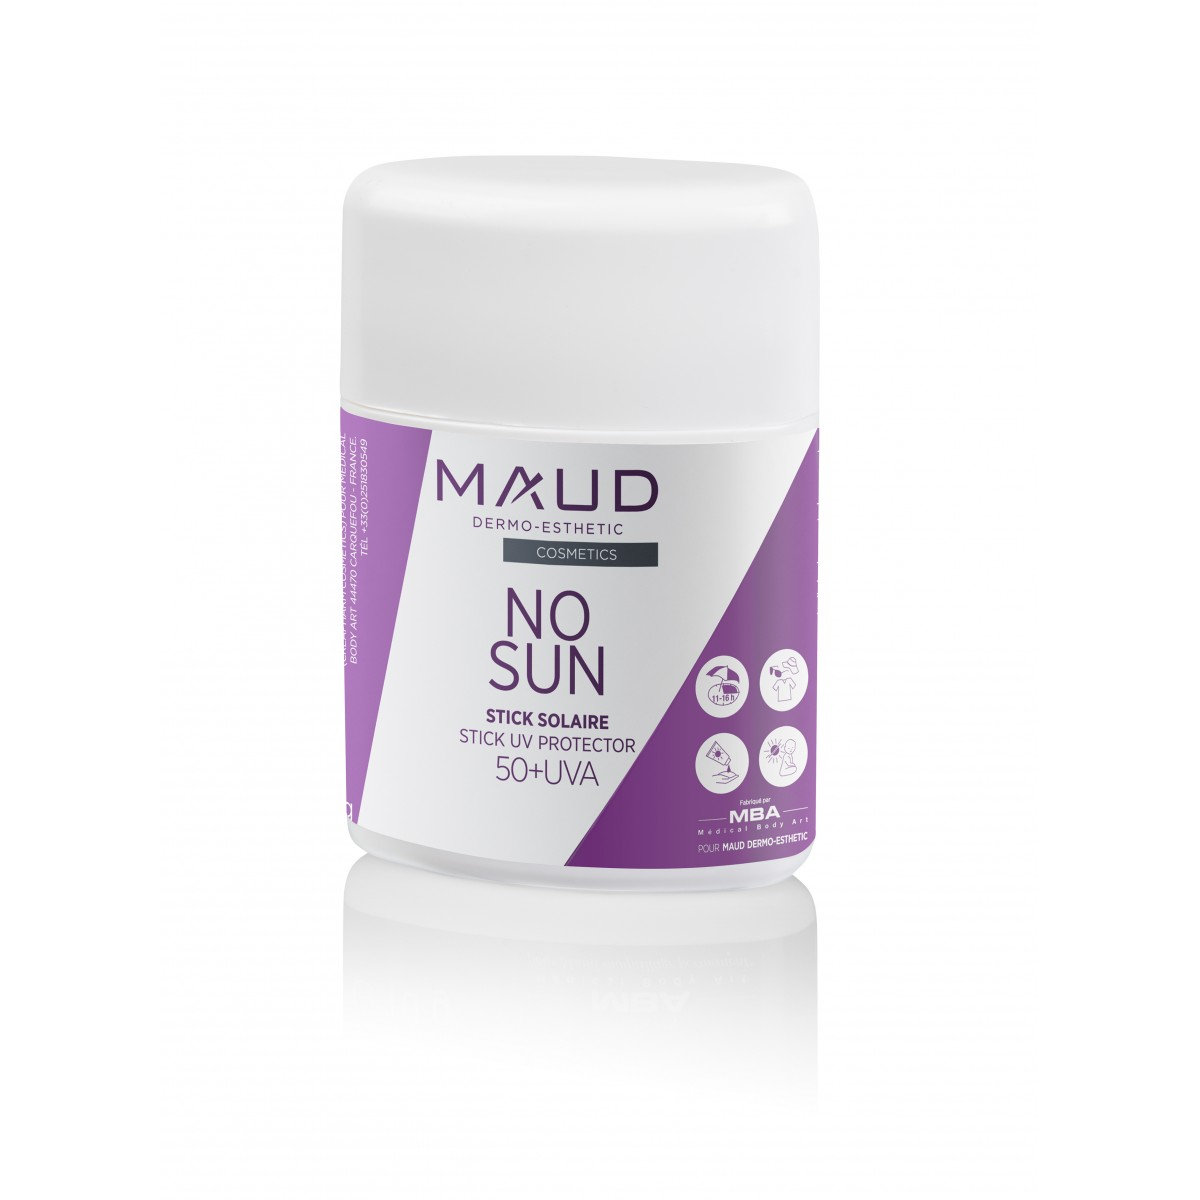 Soins maquillage permanent - MAUD COSMETICS - STICK PROTECTION SOLAIRE MAQUILLAGE PERMANENT NO SUN UV50+ (10 g)